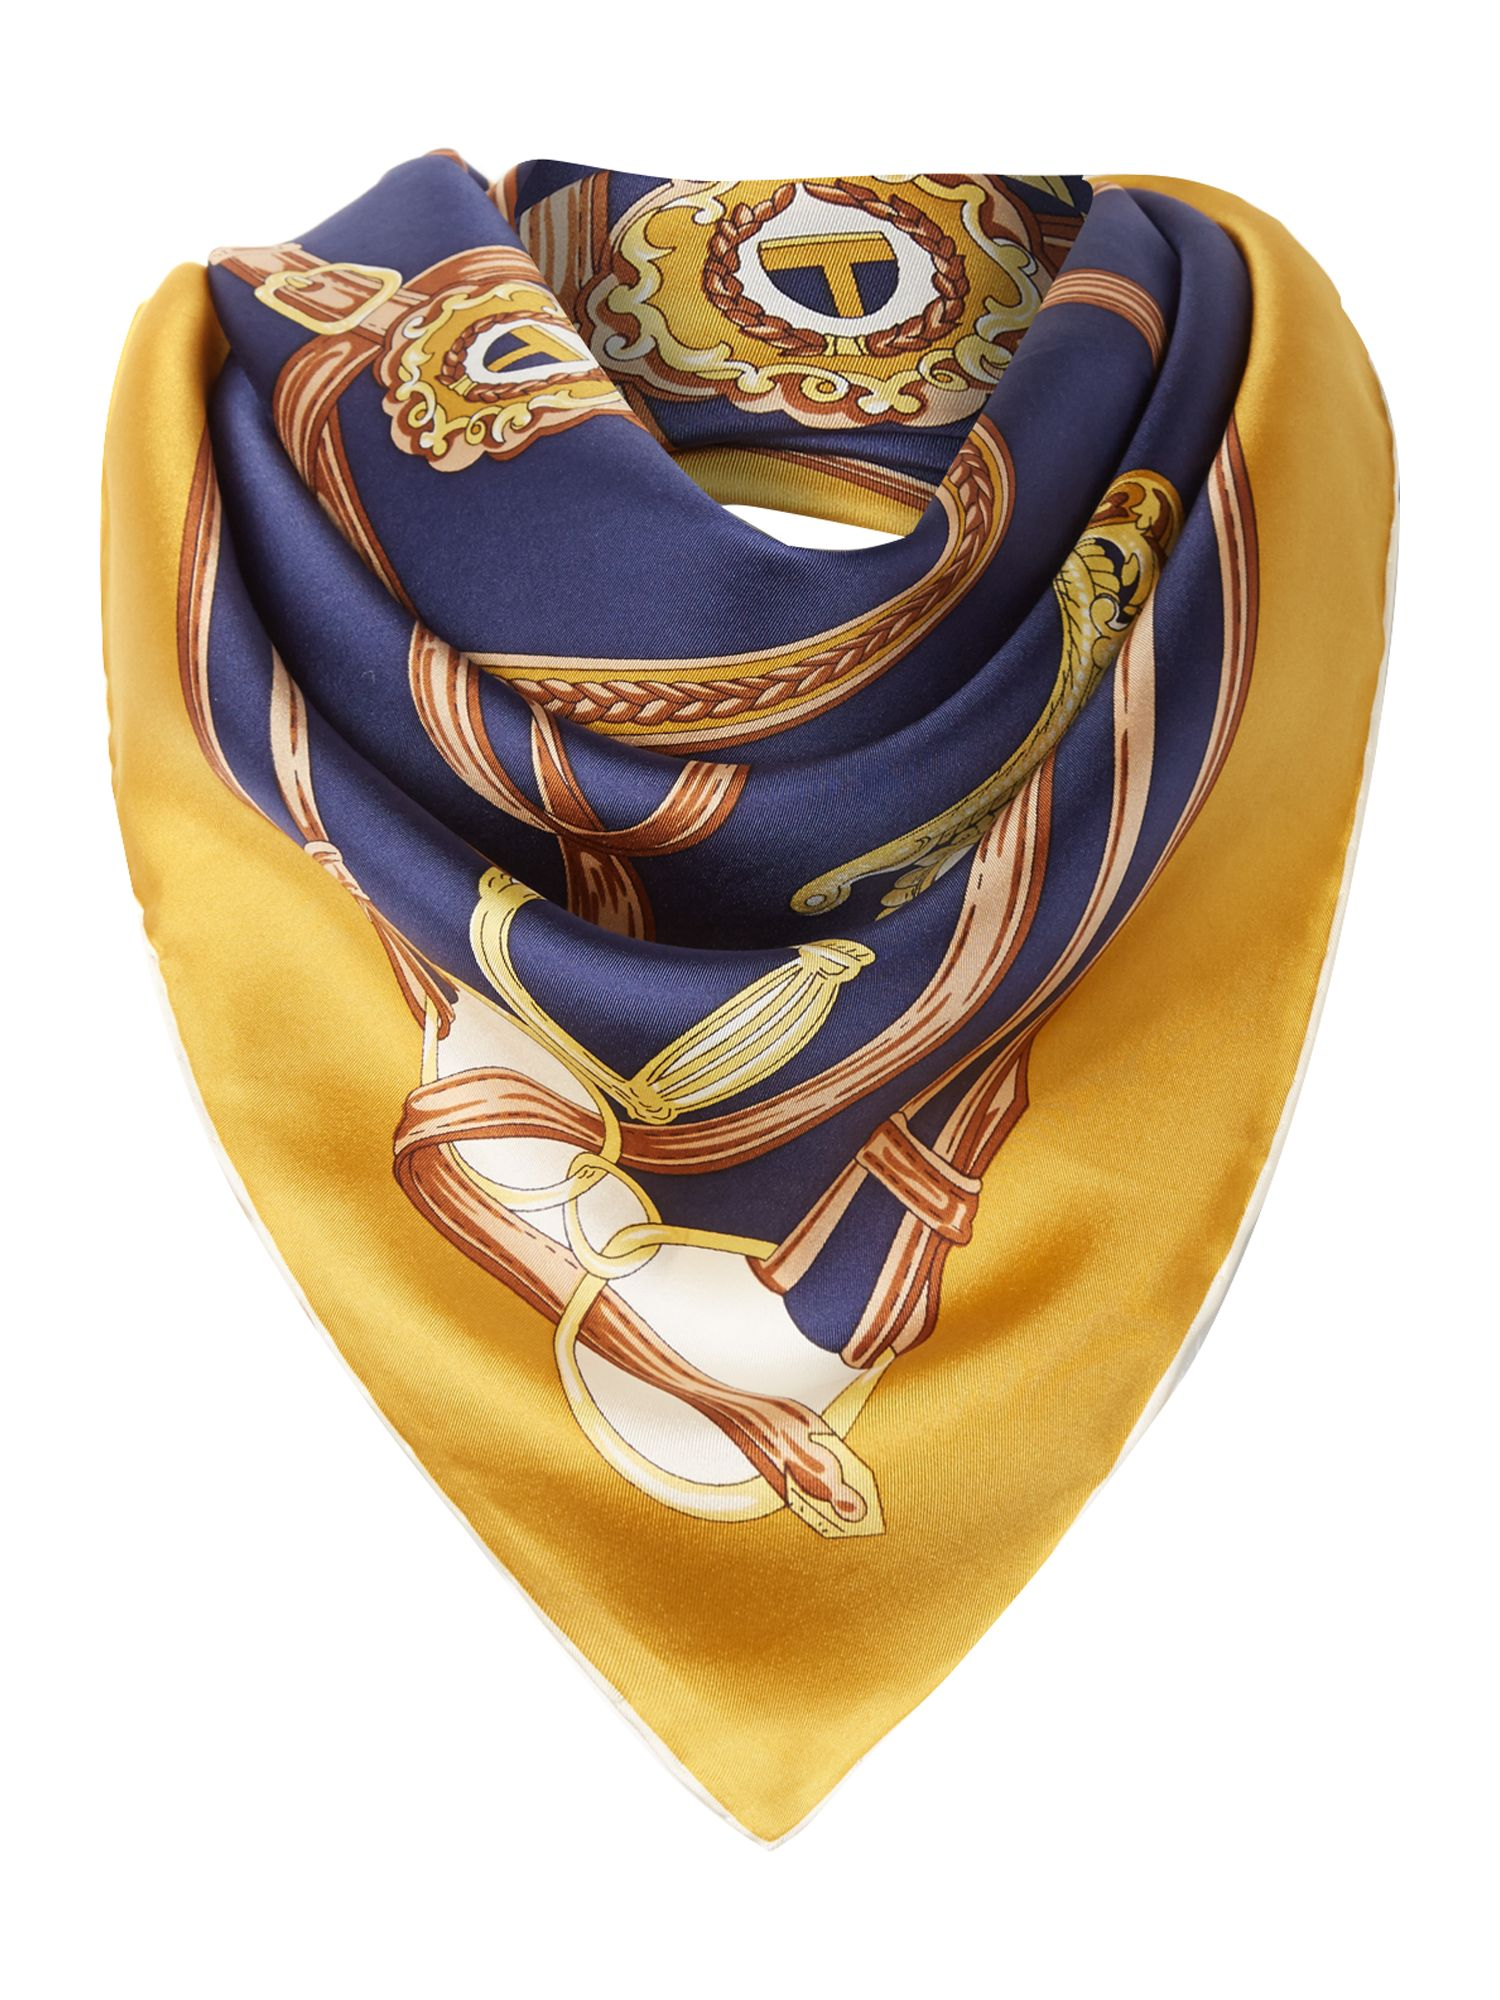 Eventing silk square burghley scarf